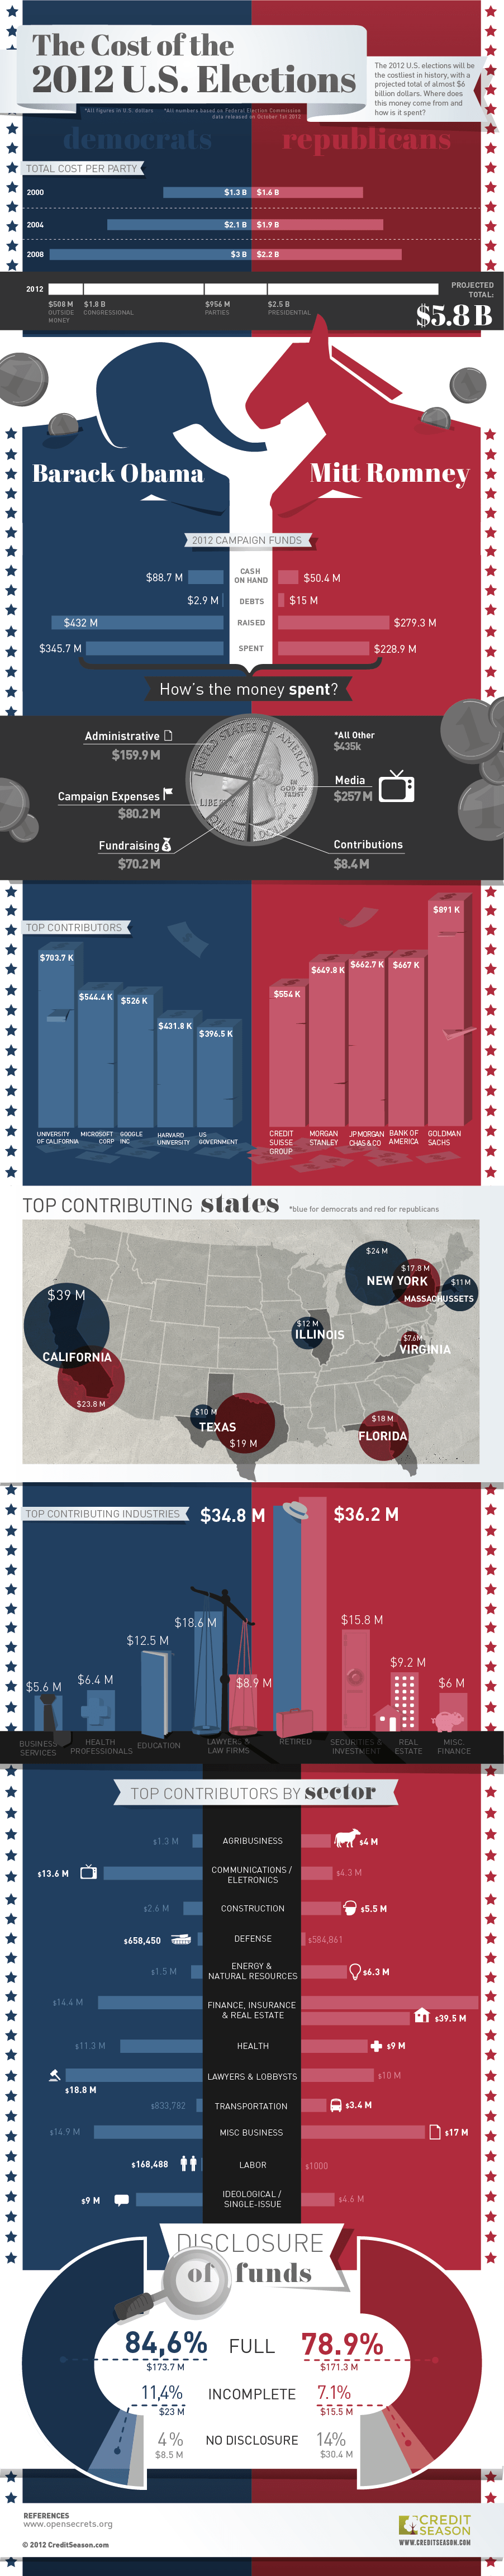 the-cost-of-the-2012-us-elections_50854a1d9d7dc